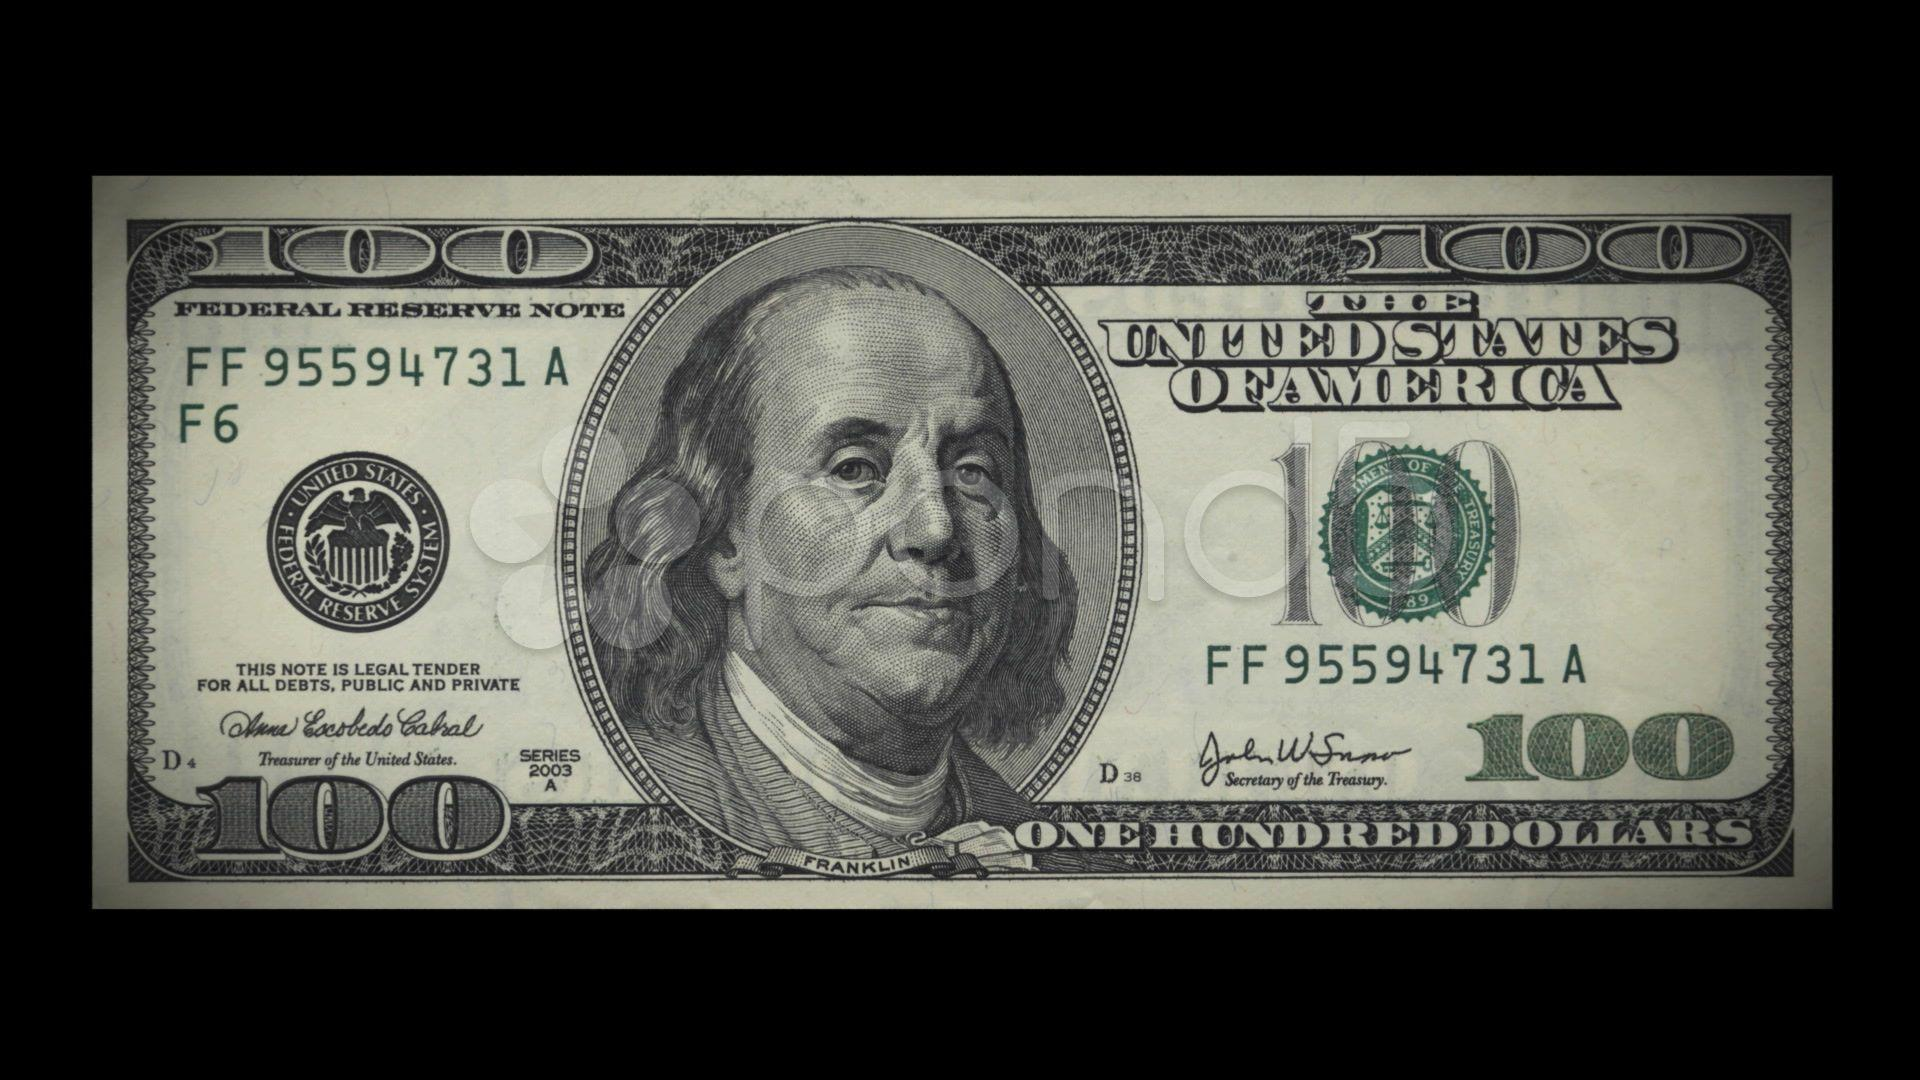 100 Dollar Bill Crashes videos 7908381